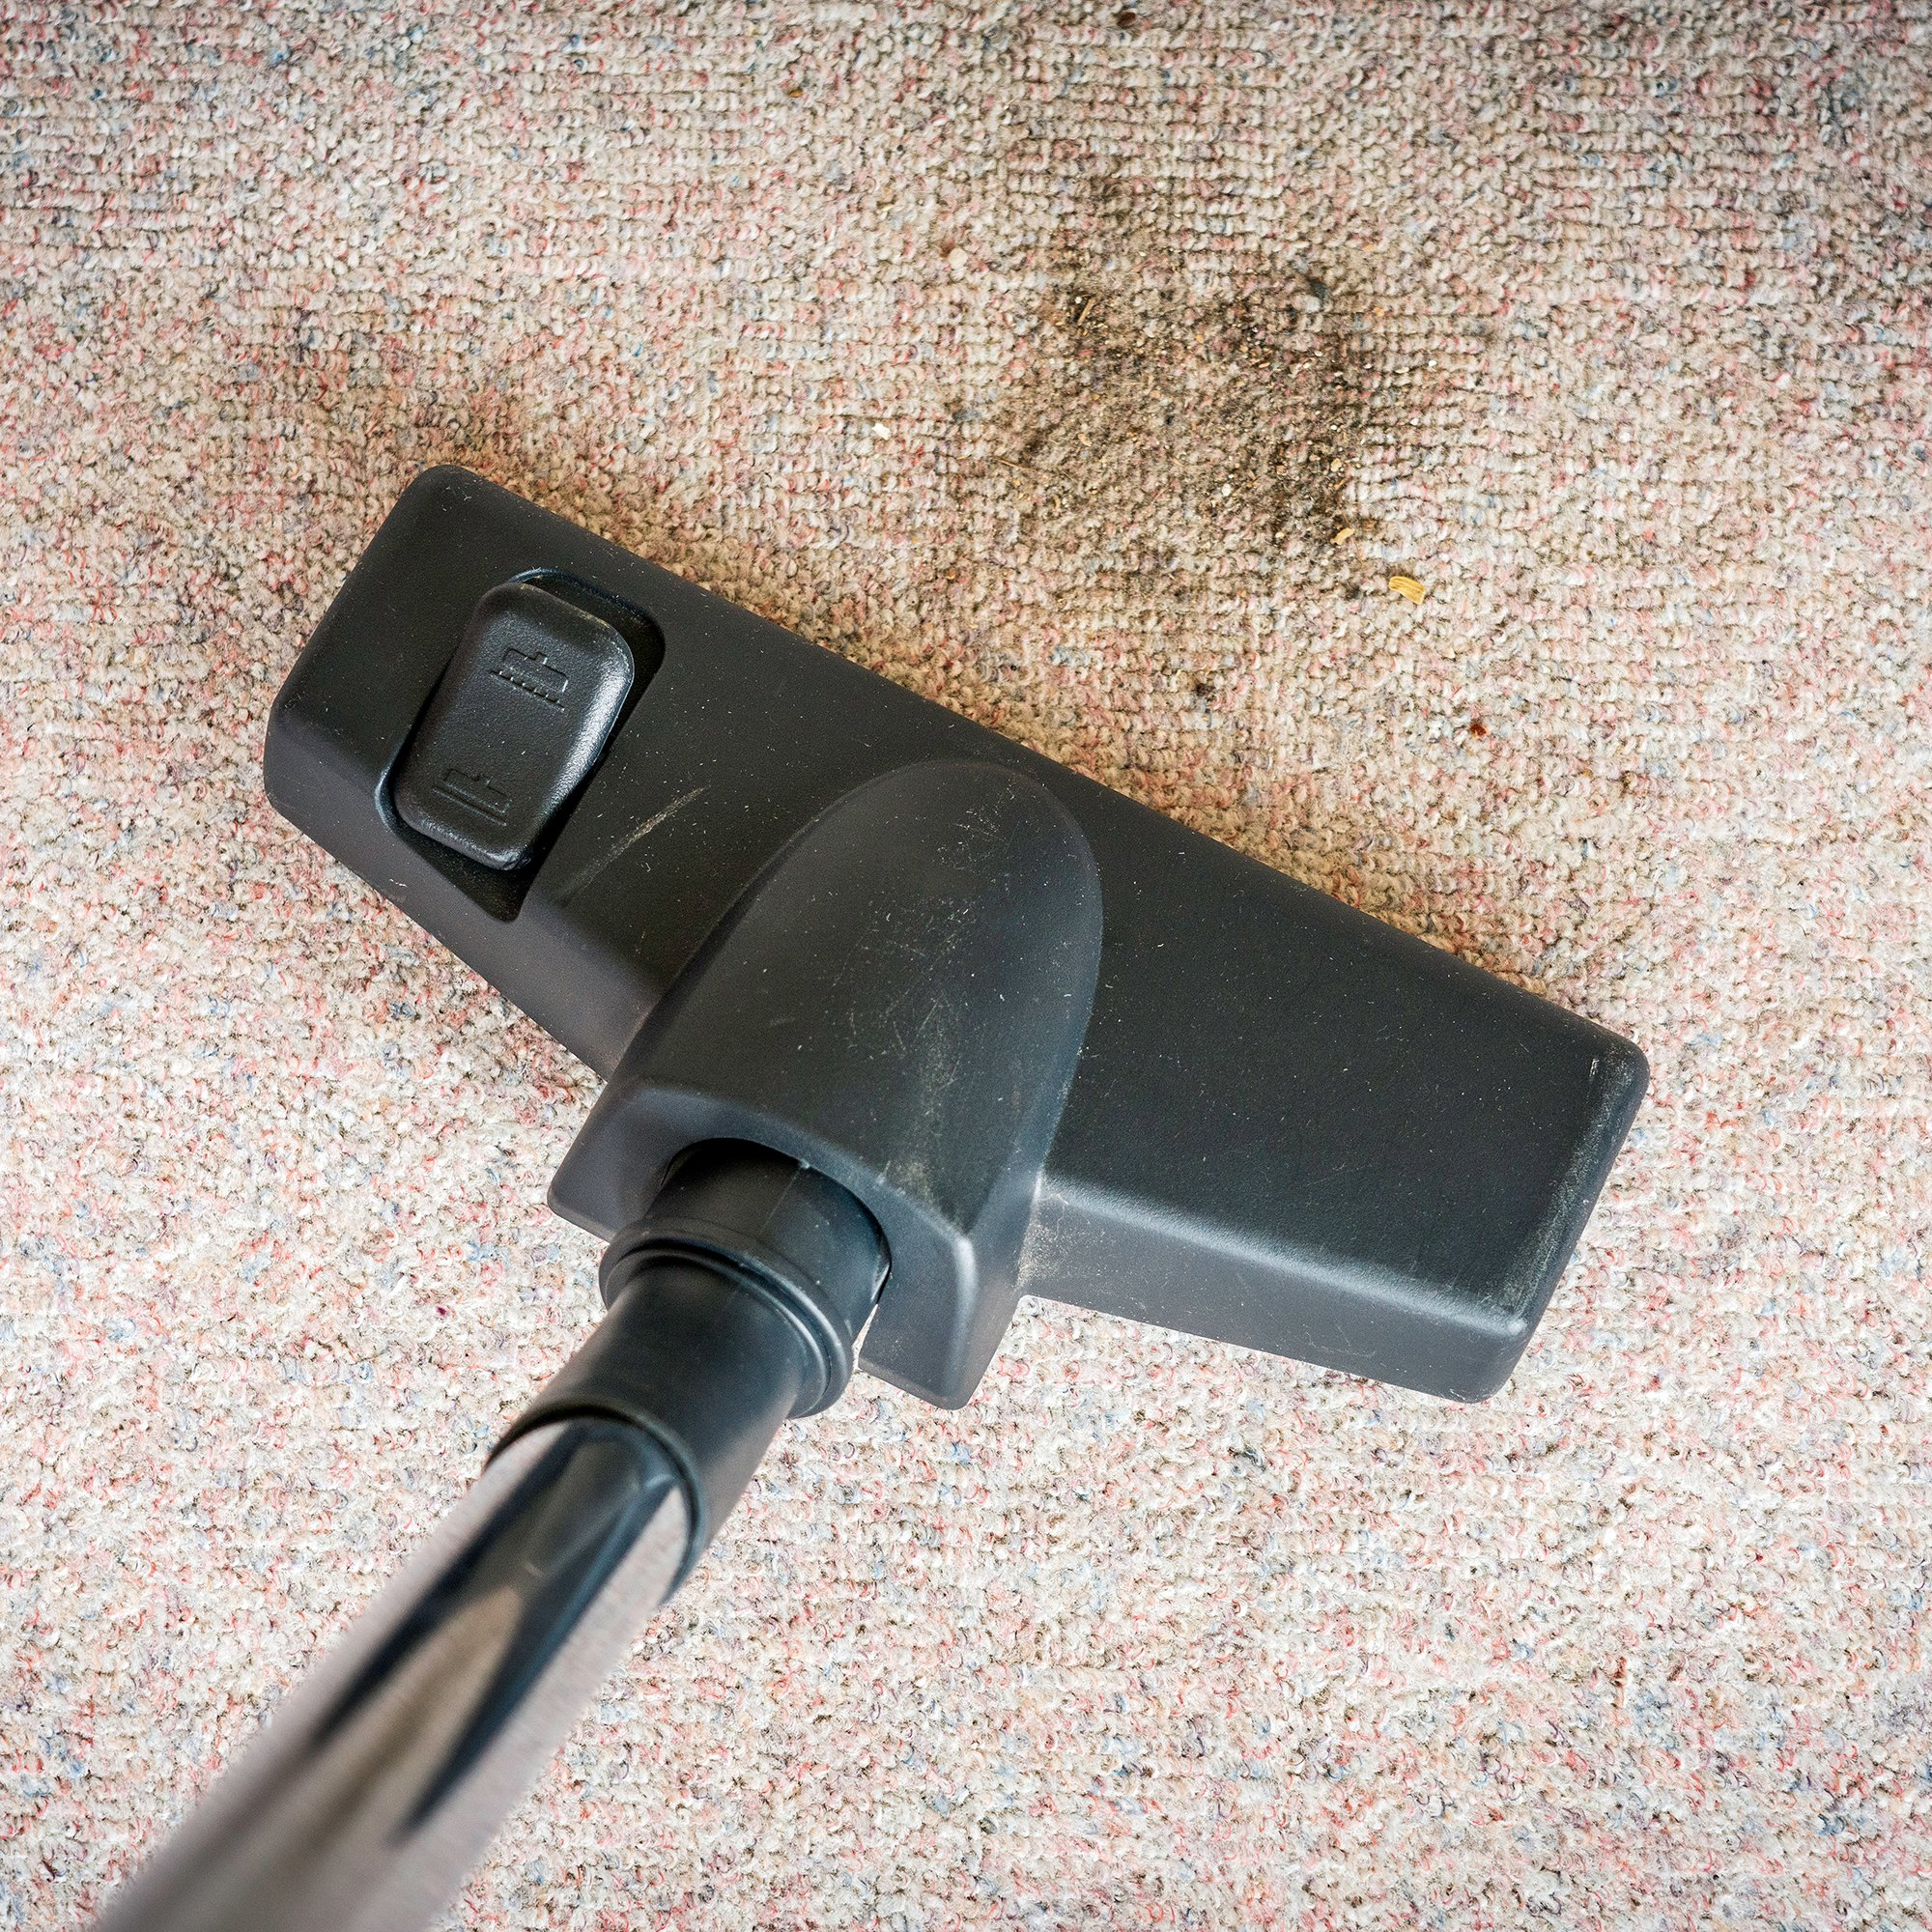 Vacuuming, Stain removal, Rug Cleaning, Professional Carpet Cleaning, Carpet and Upholstery Cleaning, Carpet Dry Express, Devizes, Wiltshire